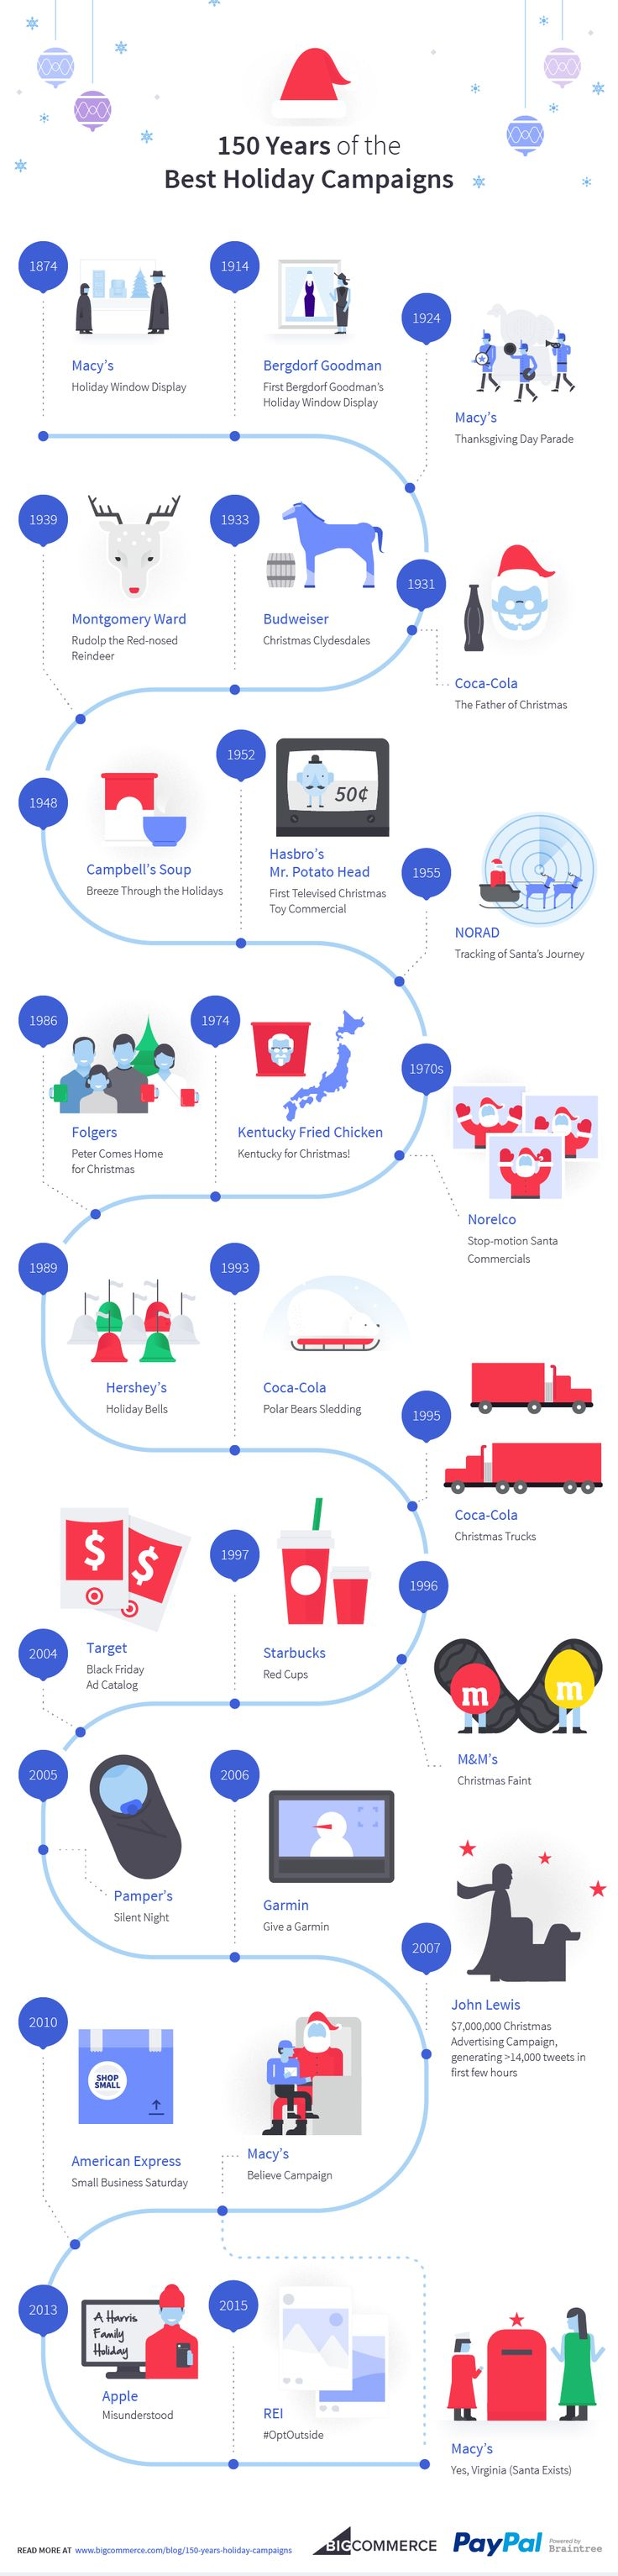 150 Years of the Best Holiday Campaigns #Infographic #Ecommerce #Marketing